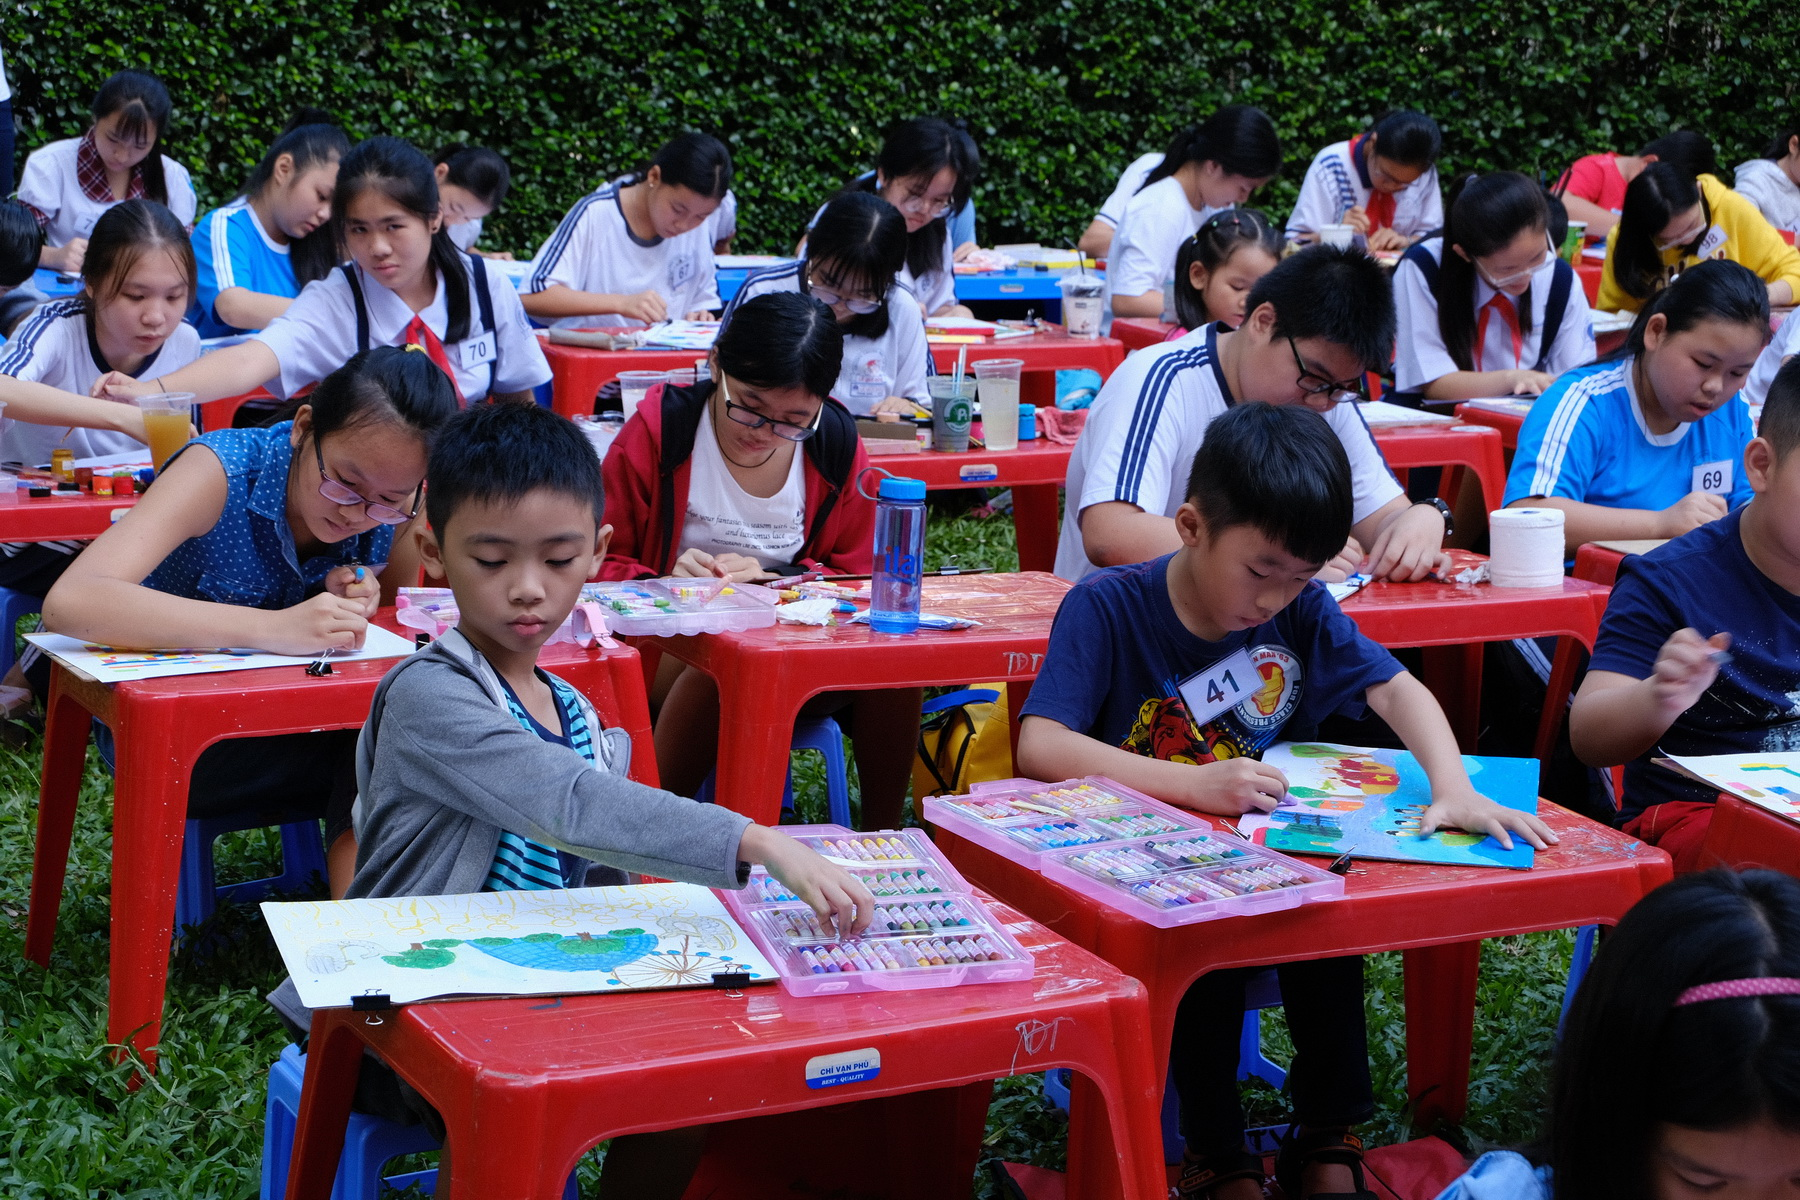 Children participate in the art competition to celebrate the 45th anniversary of the diplomatic relations between Vietnam and Singapore in Ho Chi Minh City on January 8, 2018. Photo: Tran Phuong/Tuoi Tre News